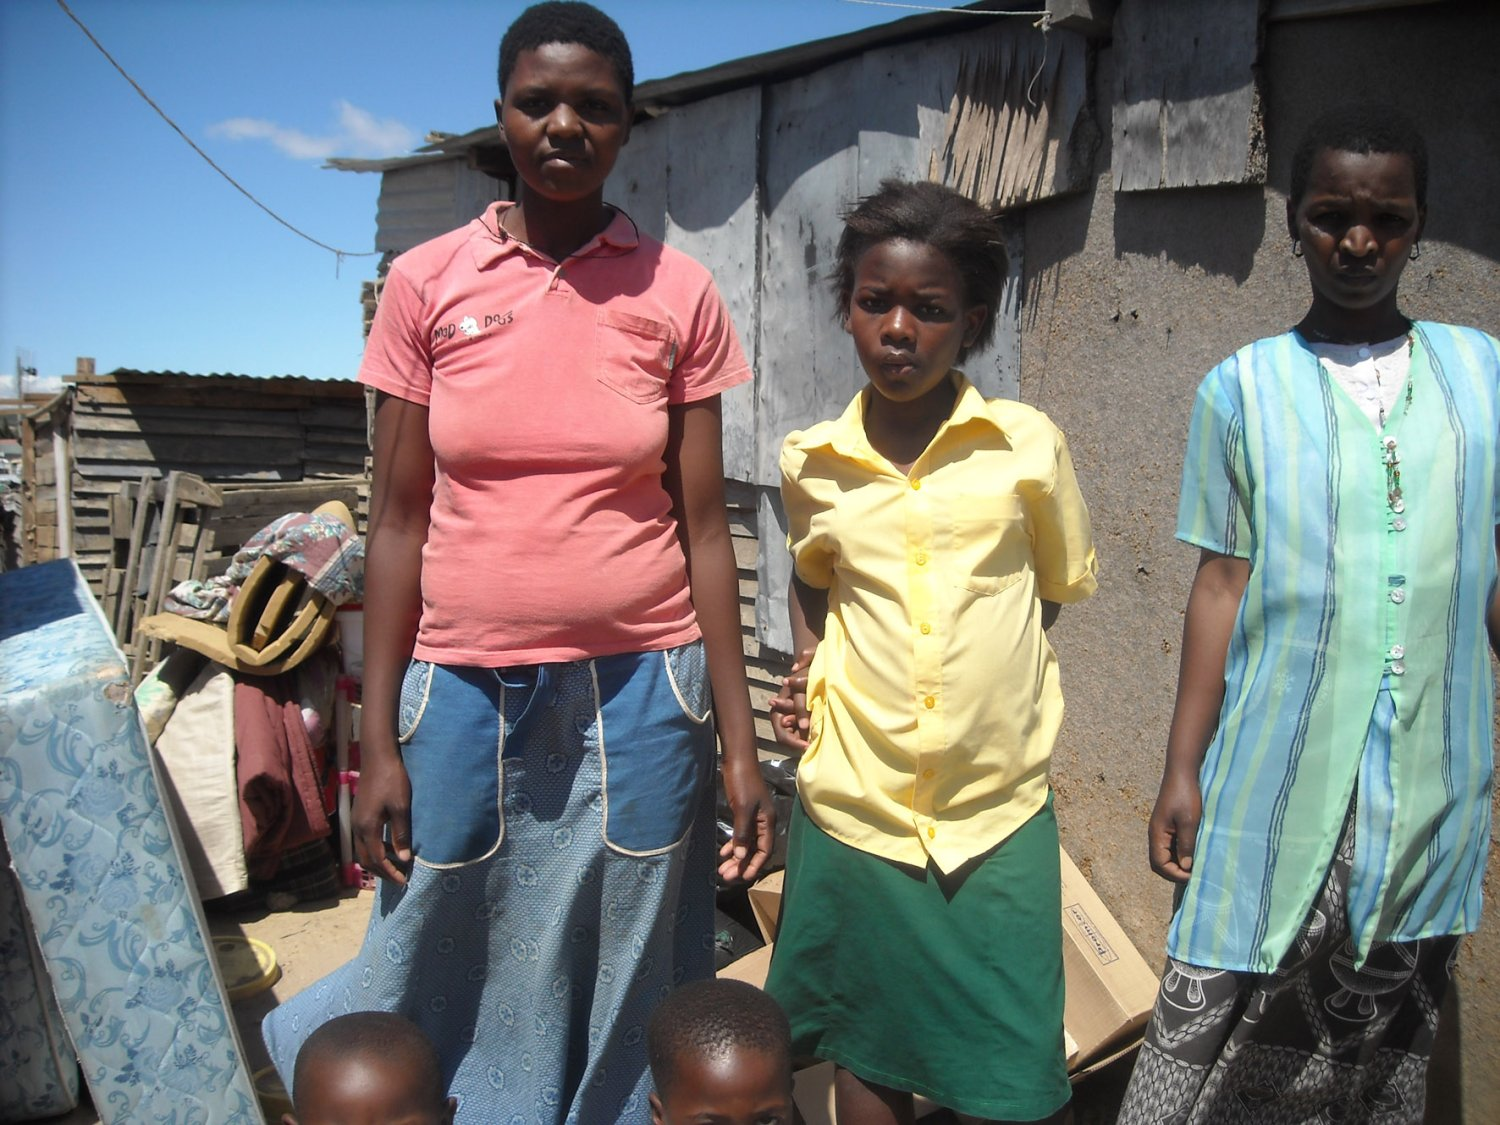 Lindiwe Jusaya, 36, (left) Cecilia Godana (middle) and Peggy Dyantyi (right), who lived in a shack that was demolished on Thursday.  Photo: Peter Luhanga/West Cape News